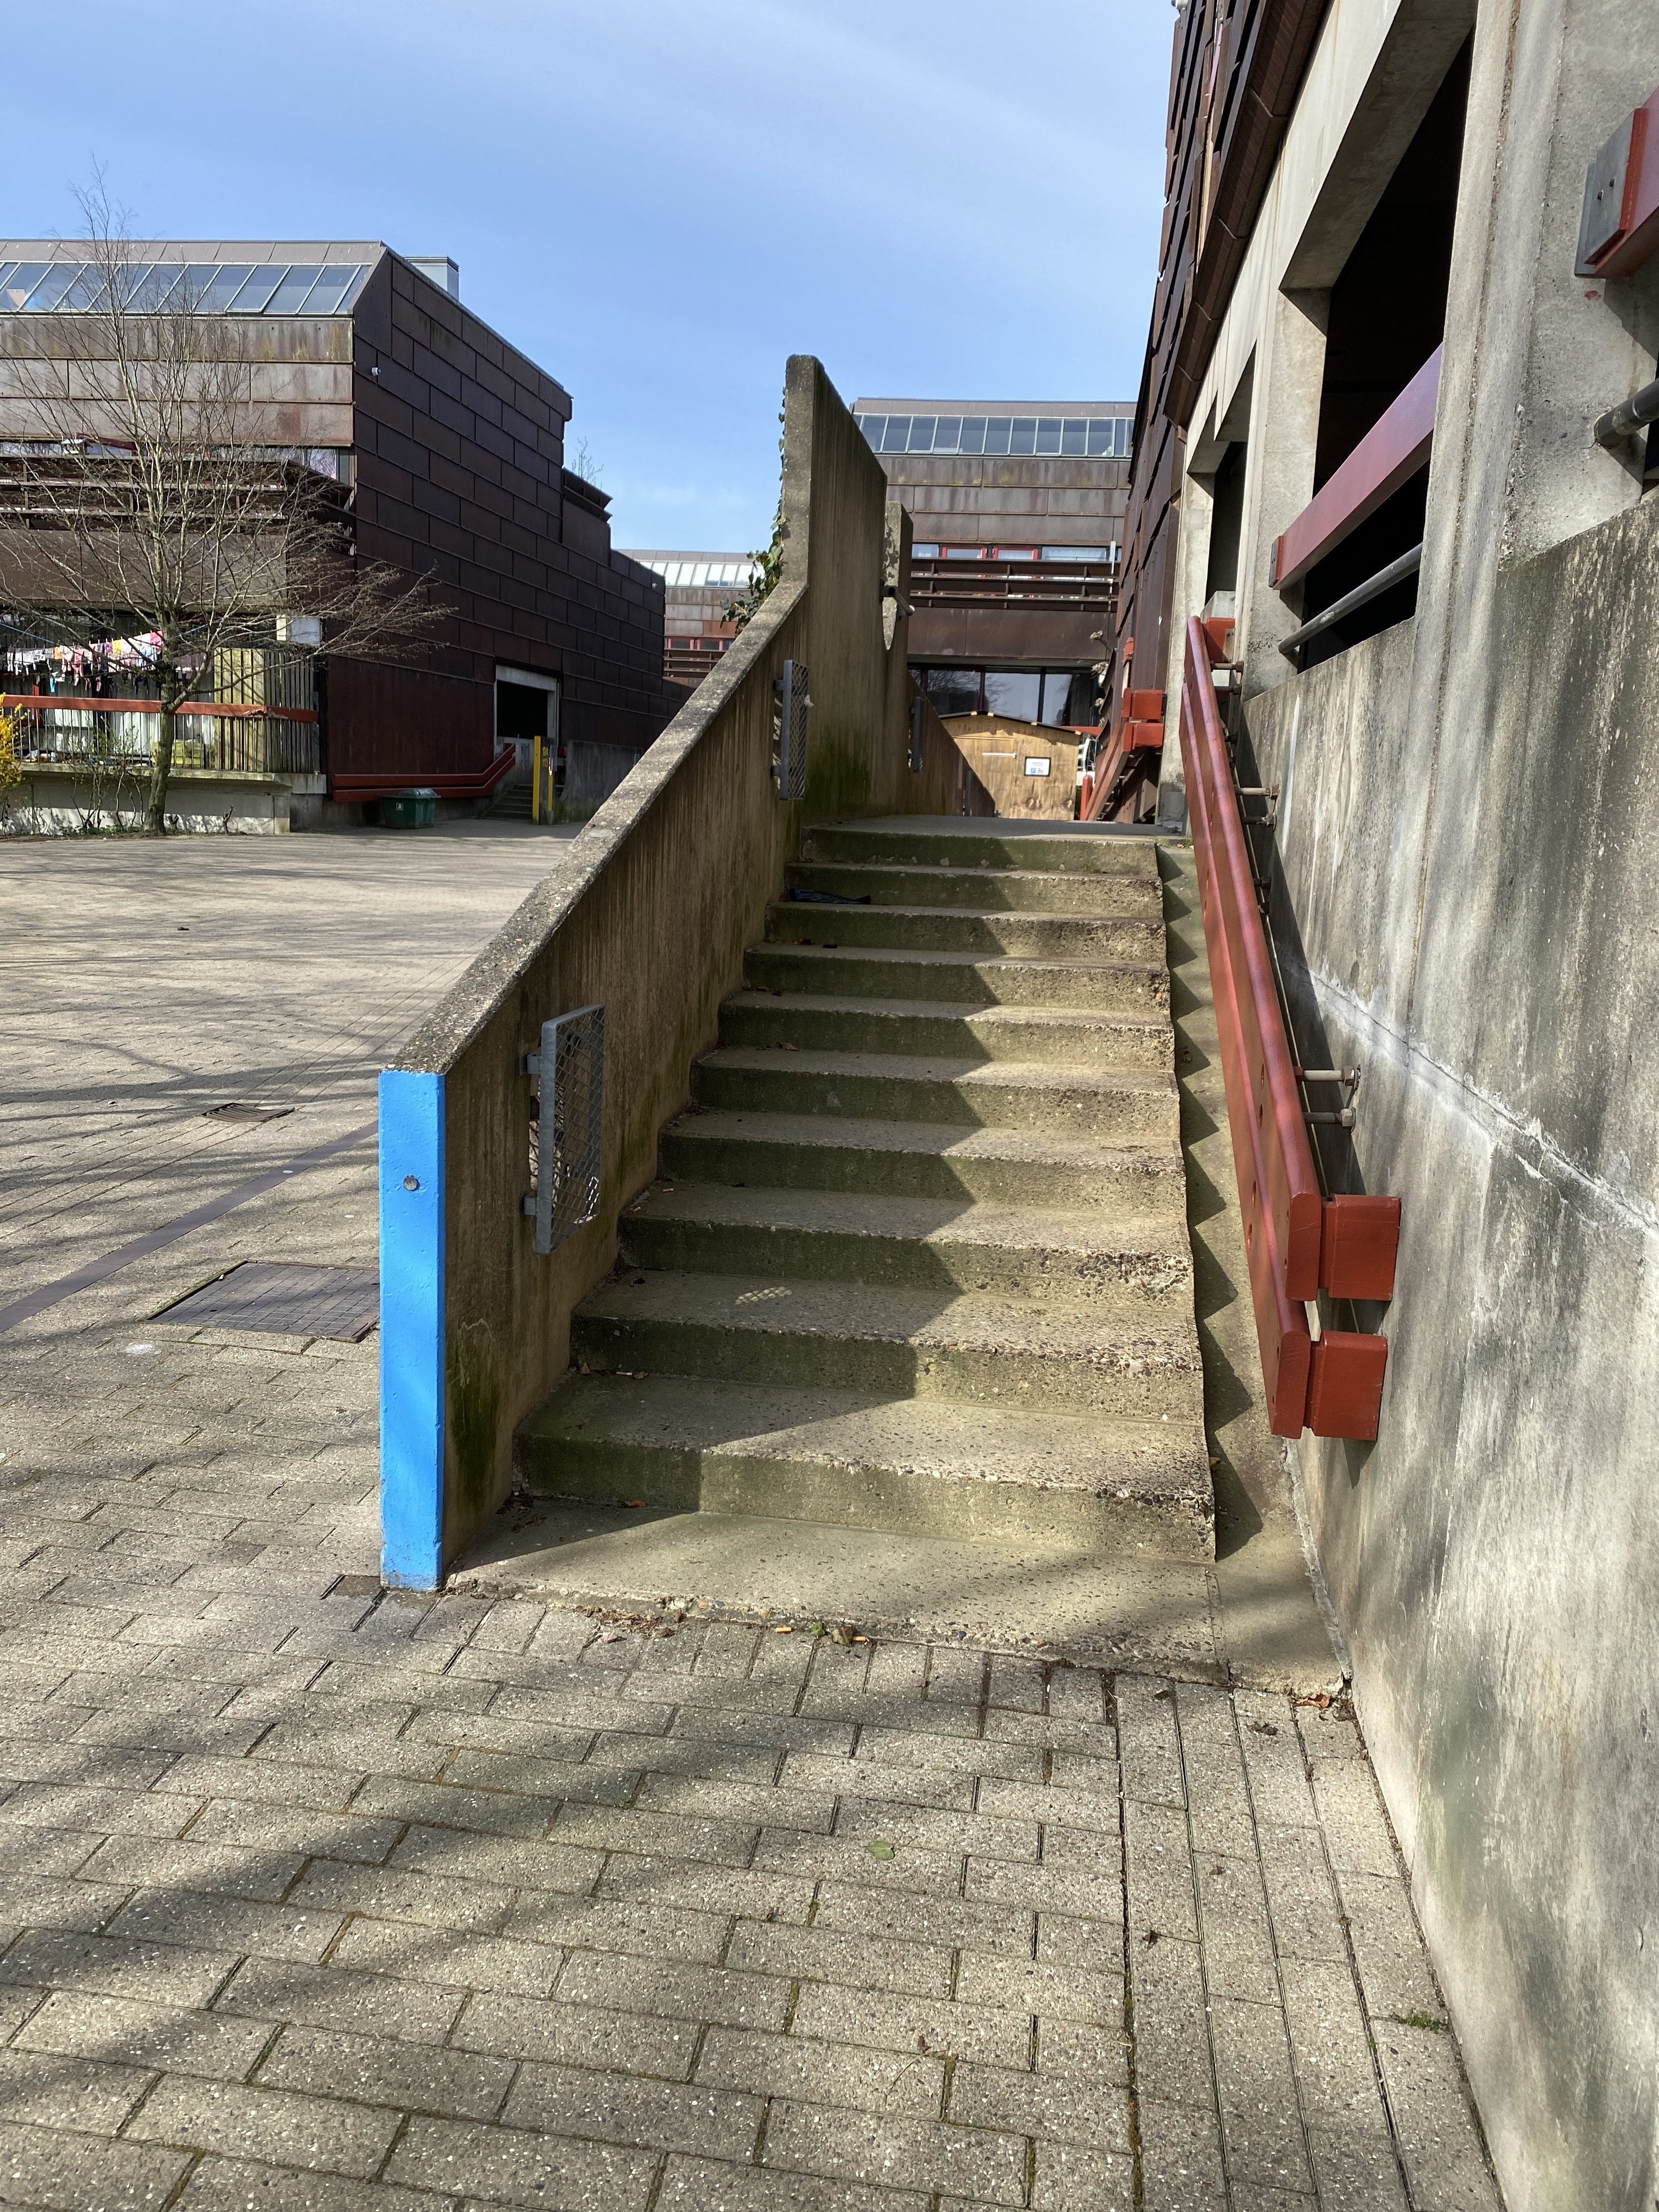 Then we went on strange skatemissions and spots check in farum. Jonas says hen can take this ledge